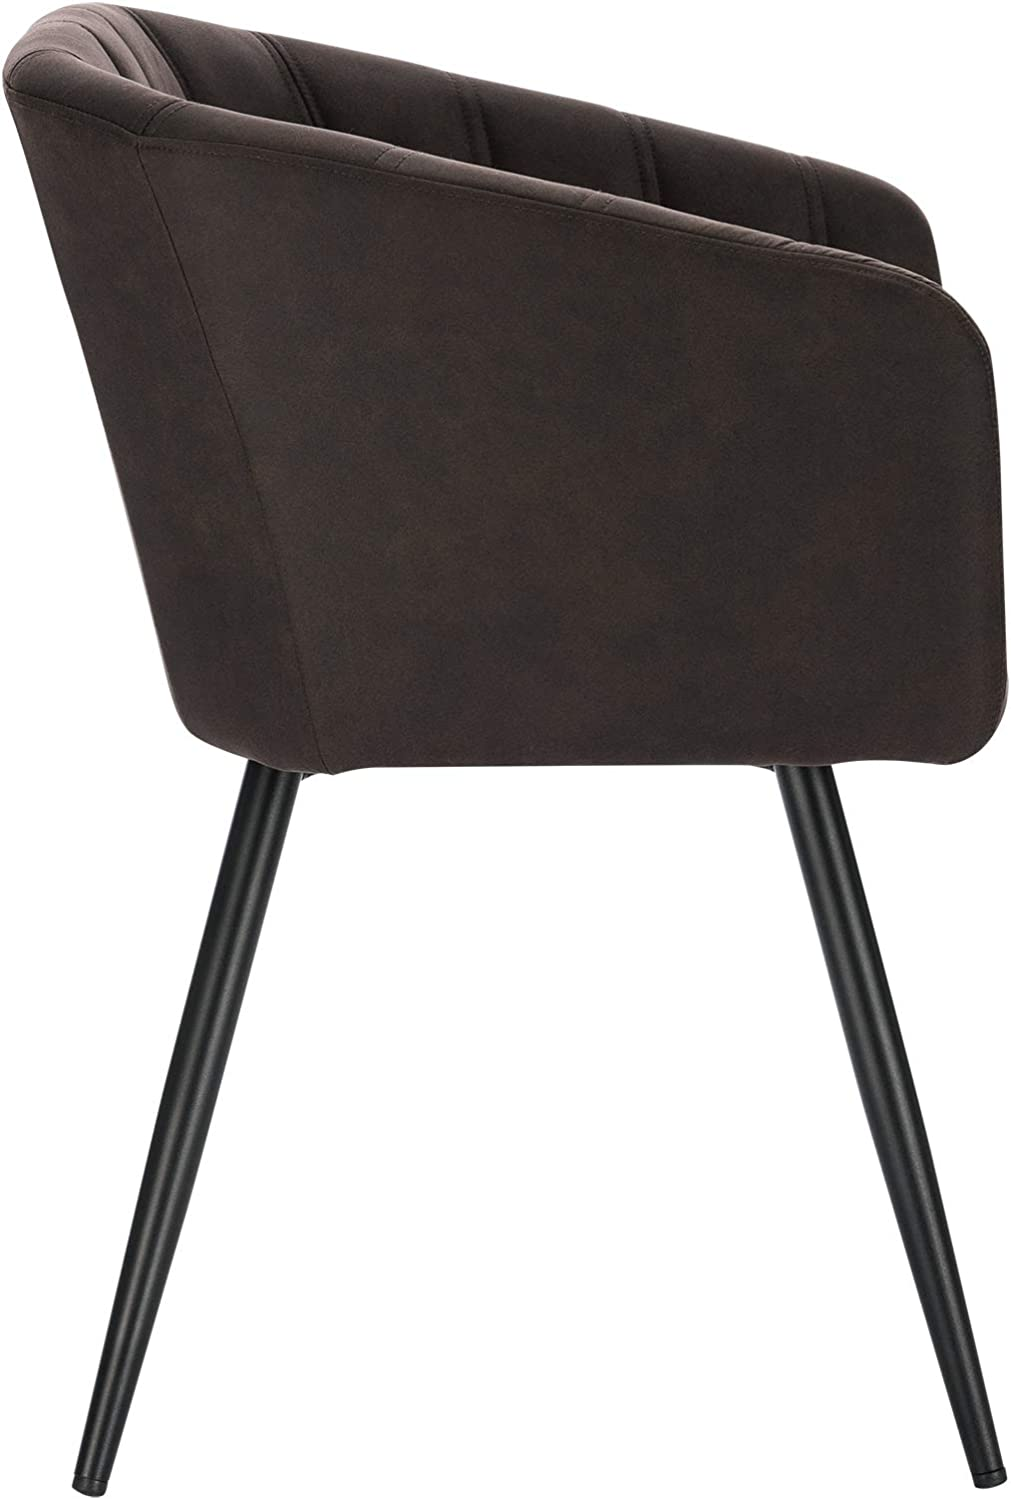 Lestarain 2 Pieces Dining Chair, Kitchen Chair Living Room Chair Fabric Cloth Upholstered Chair With Armrest Metal Legs Chair for Dining Room Living Room&Kitchen - Brown Dark Brown